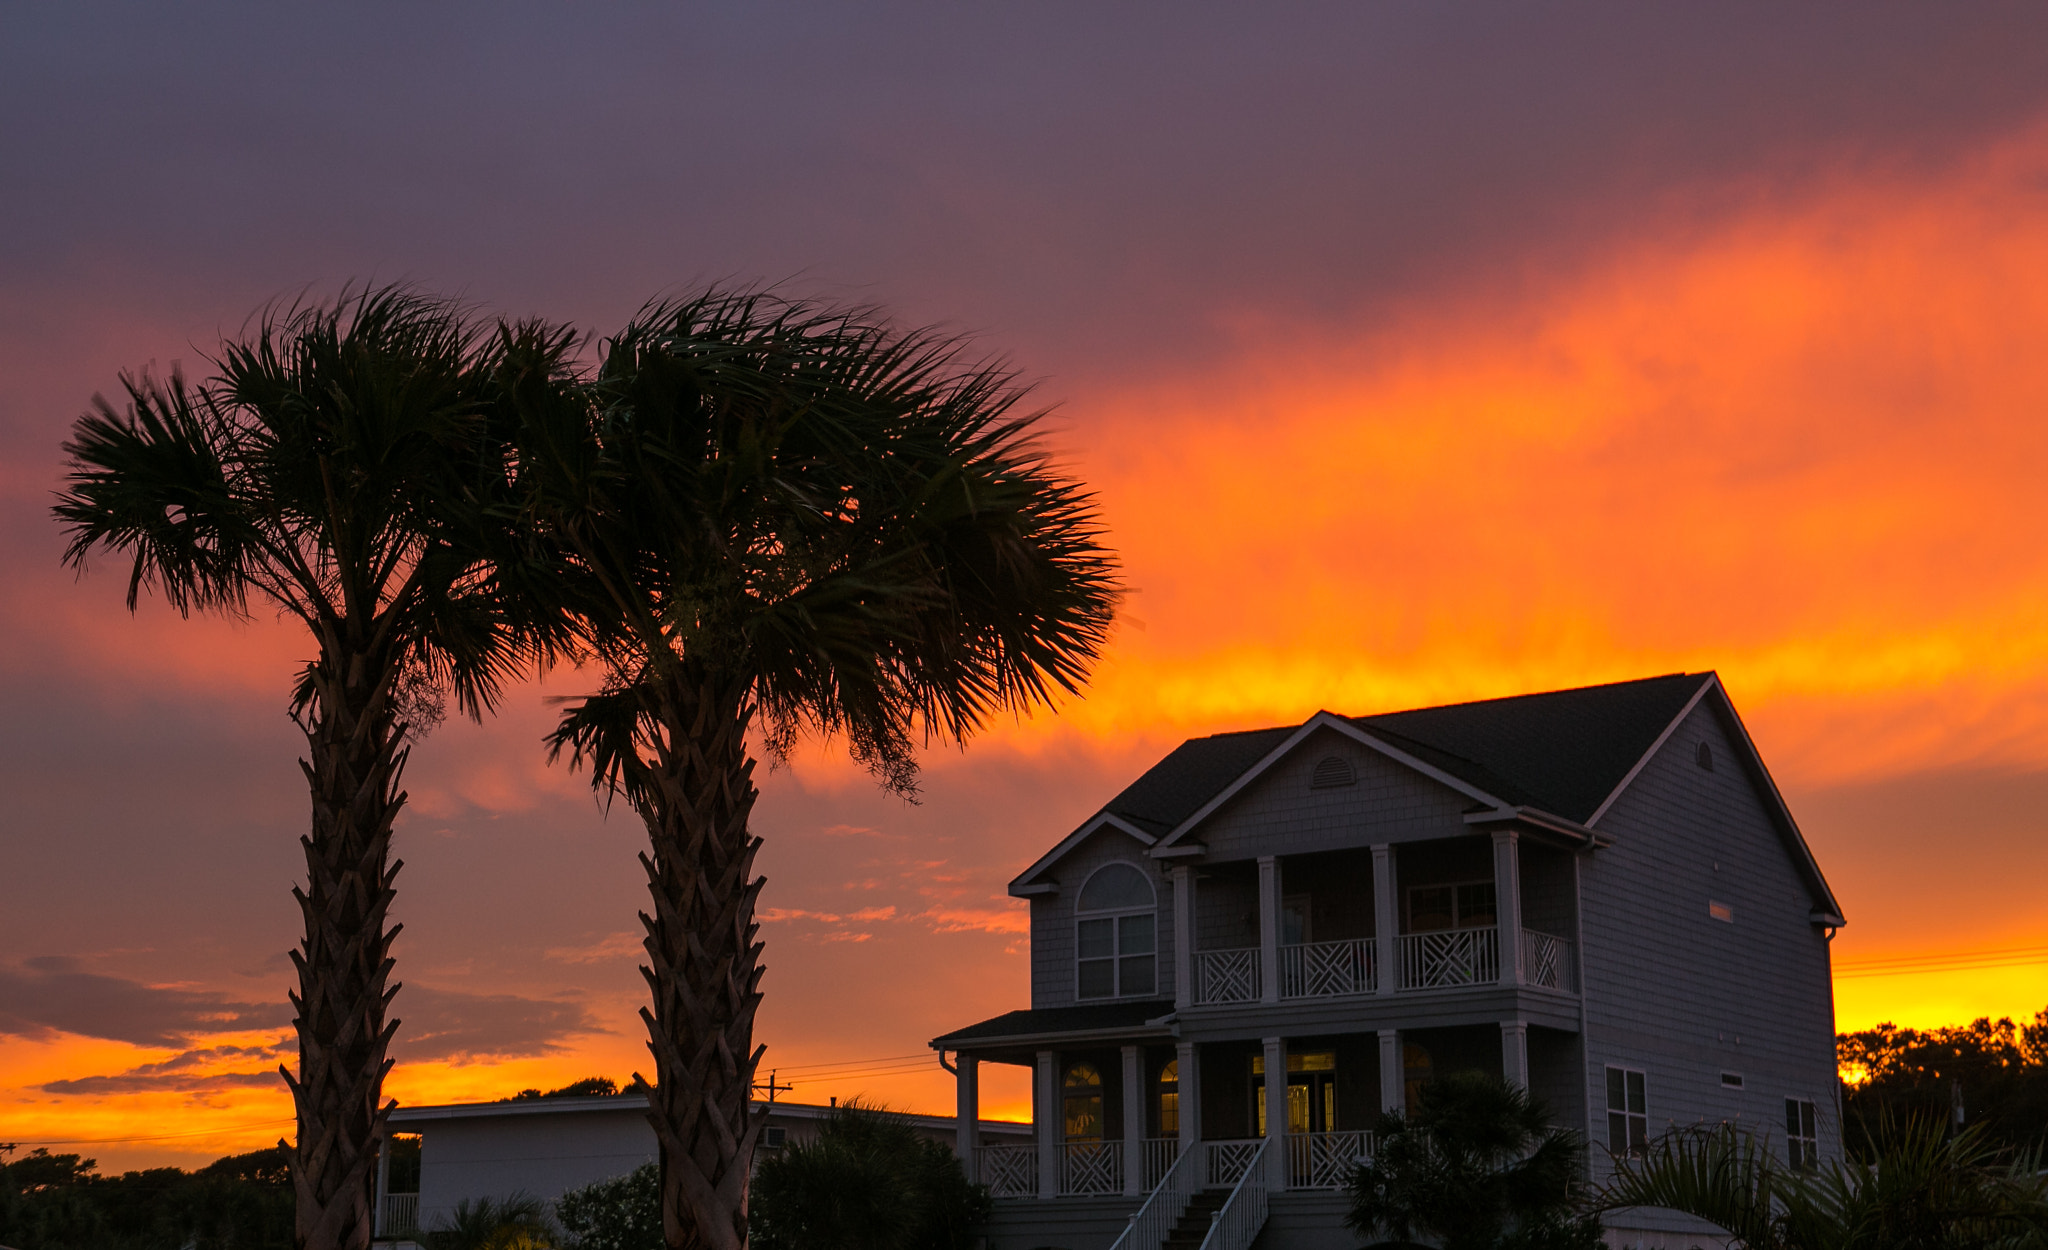 Photograph Fiery Myrtle Beach Sunset by Kurt Miller on 500px